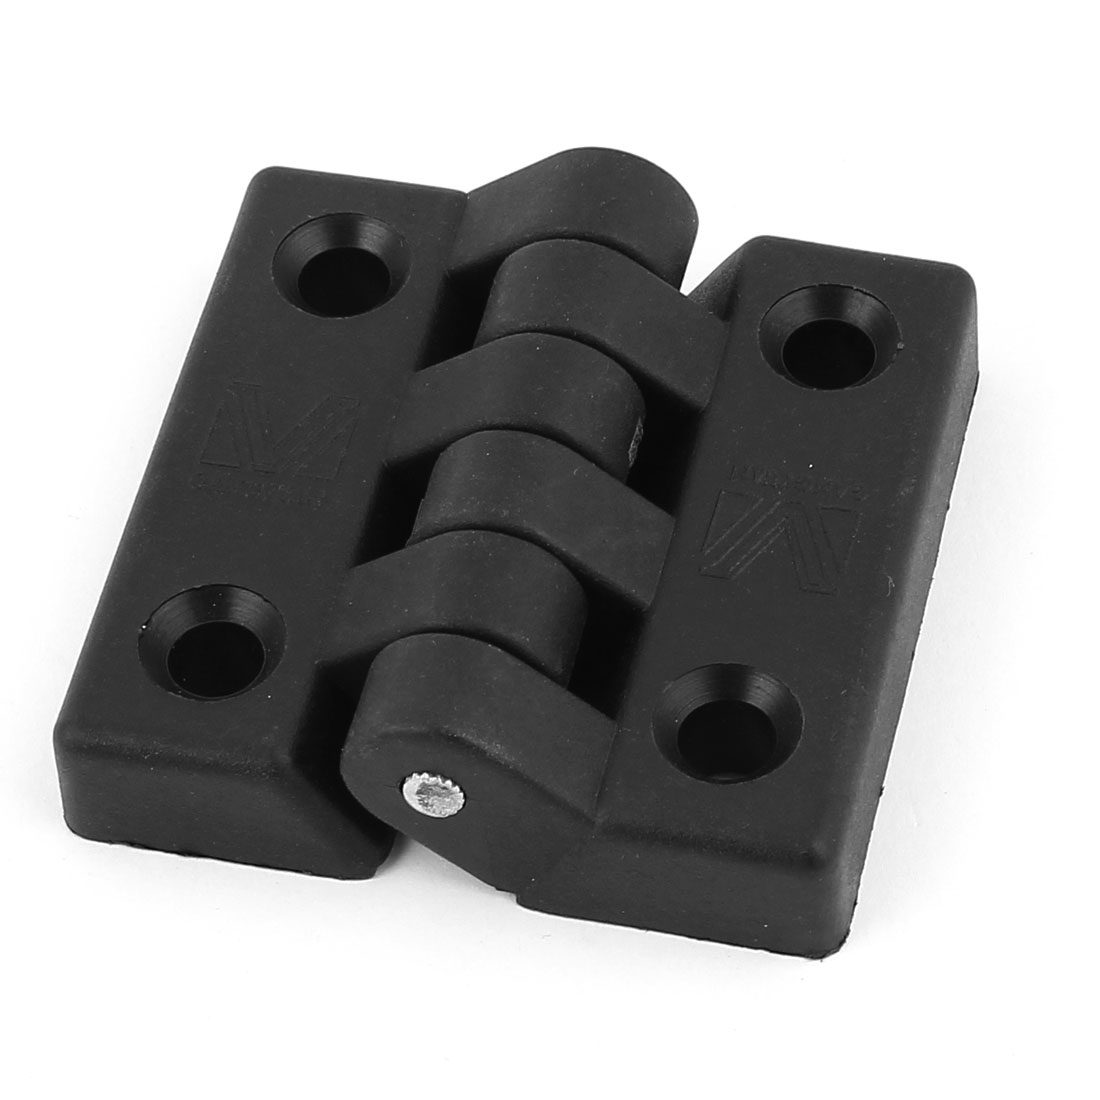 Black Plastic Foldable Cabinet Cupboard Gate Door Flap Butt Ball Bearing Hinge